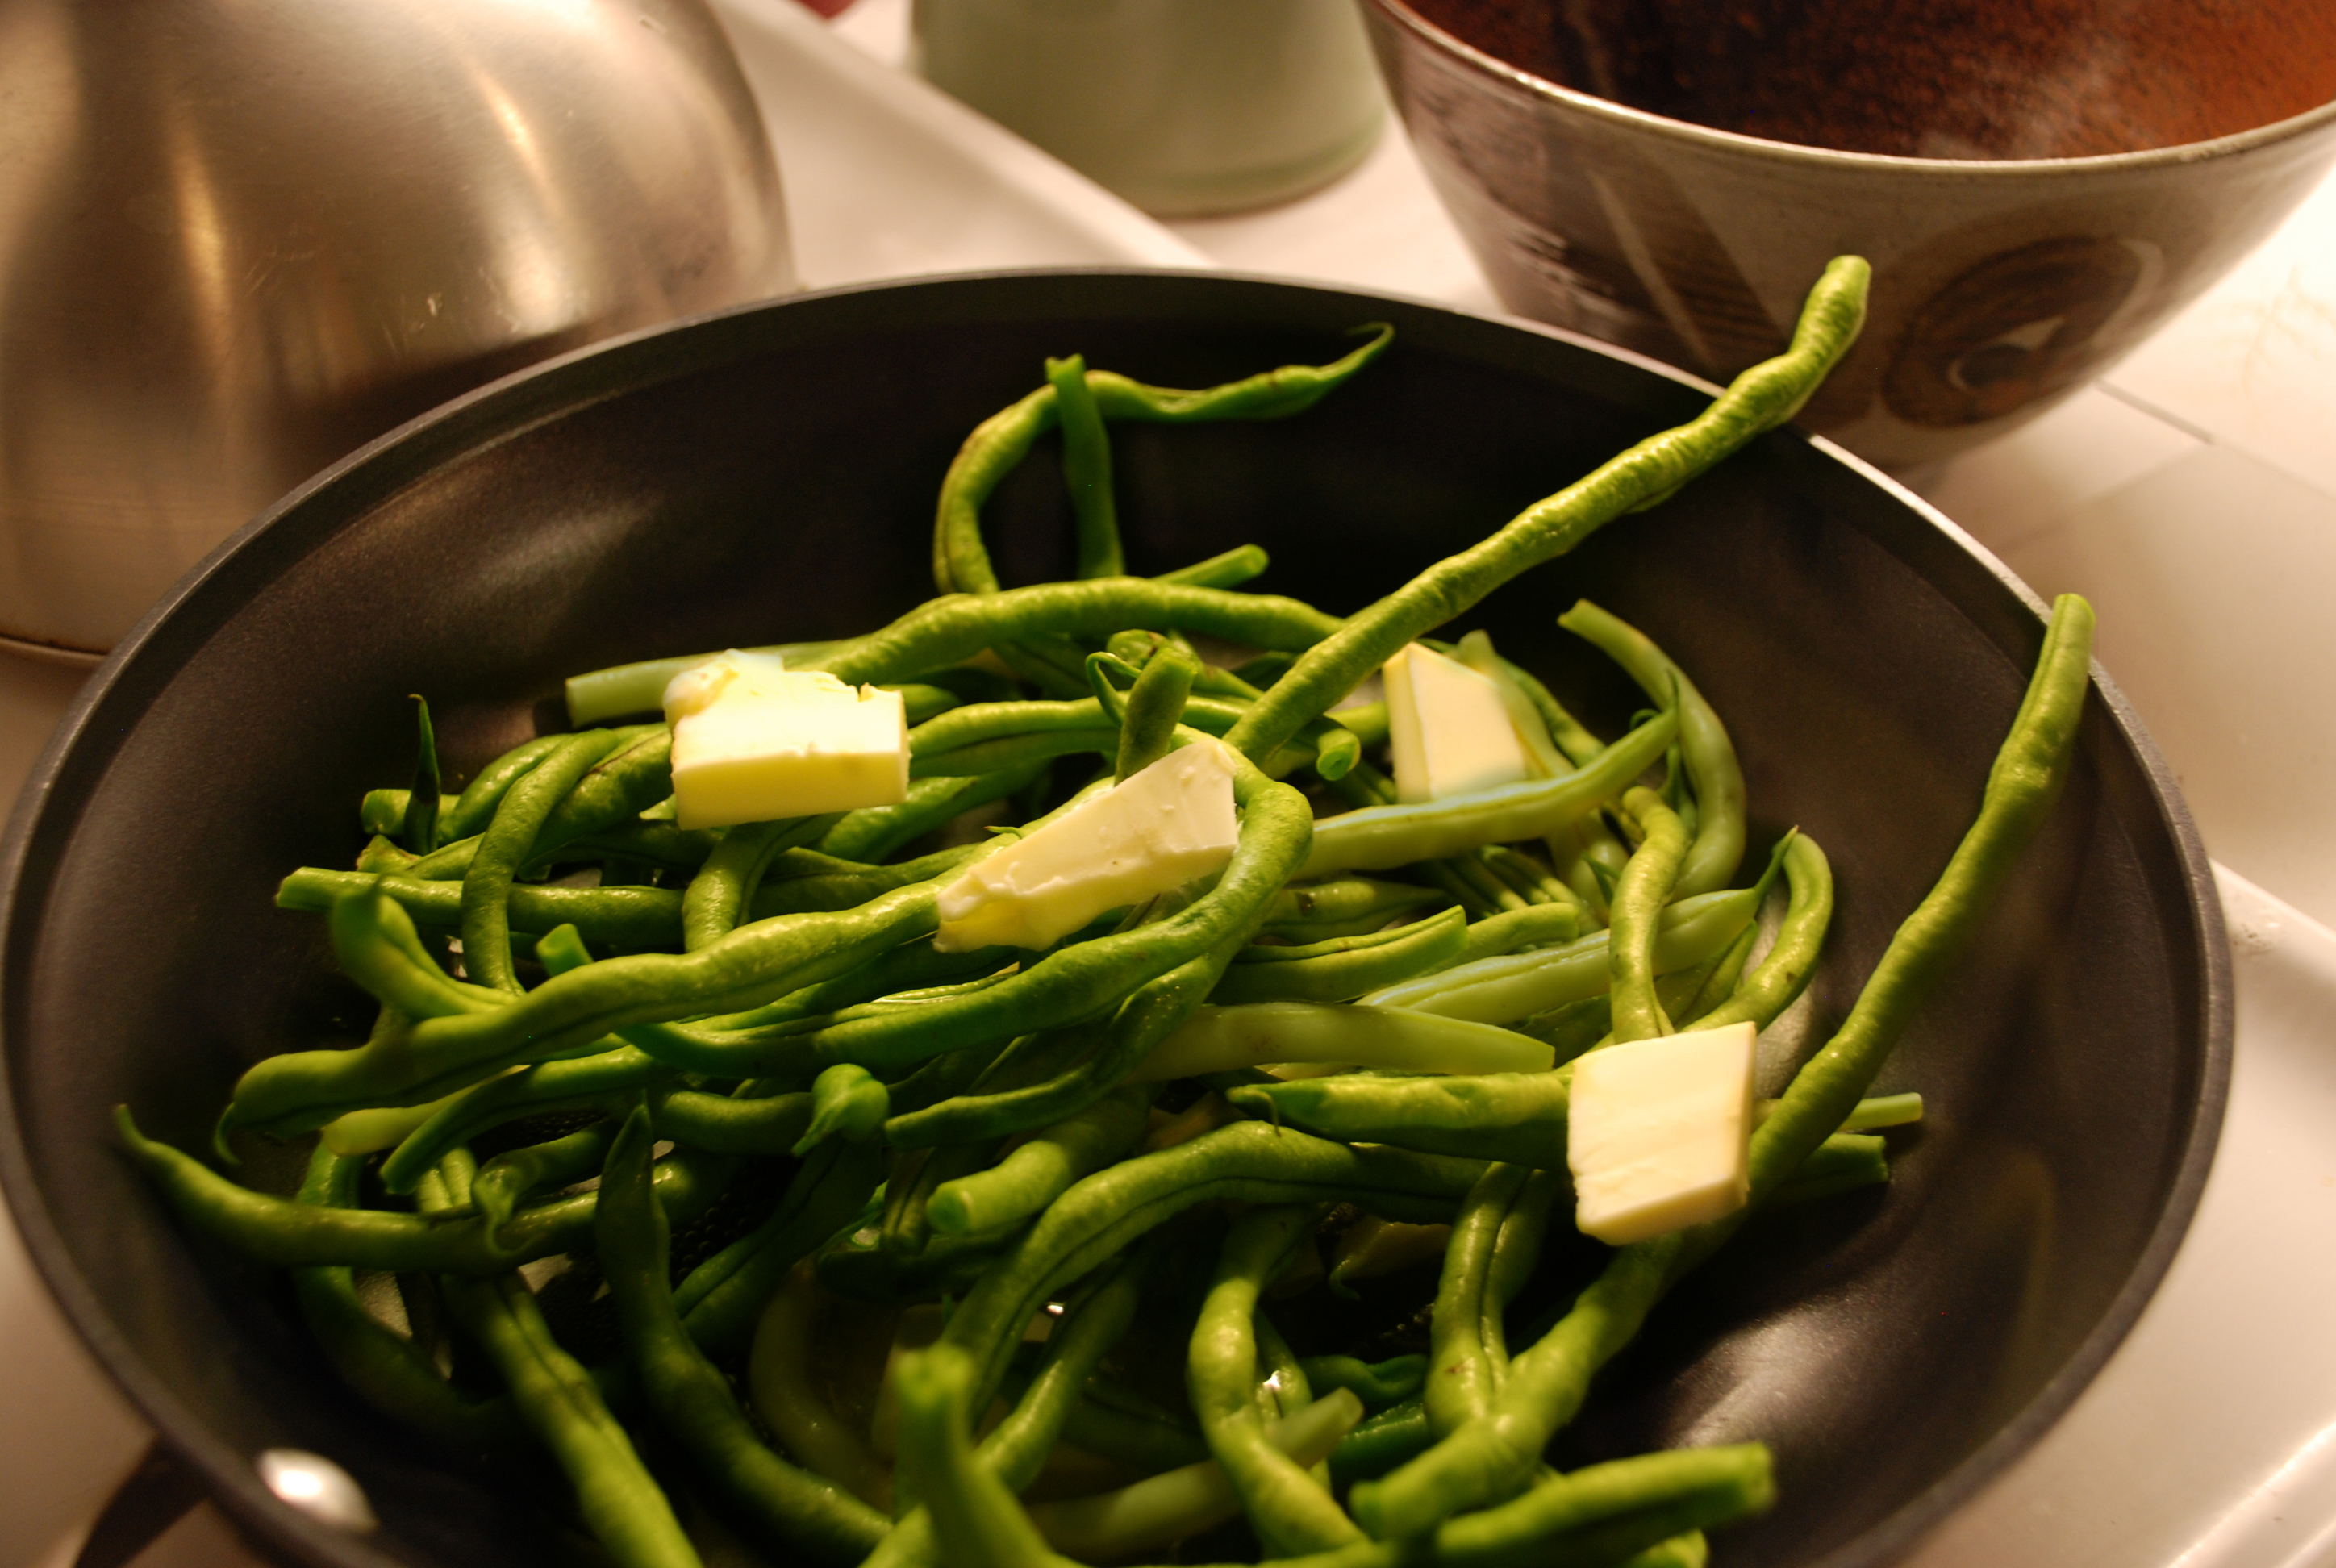 Green beans ready to cook with butter in a skillet.